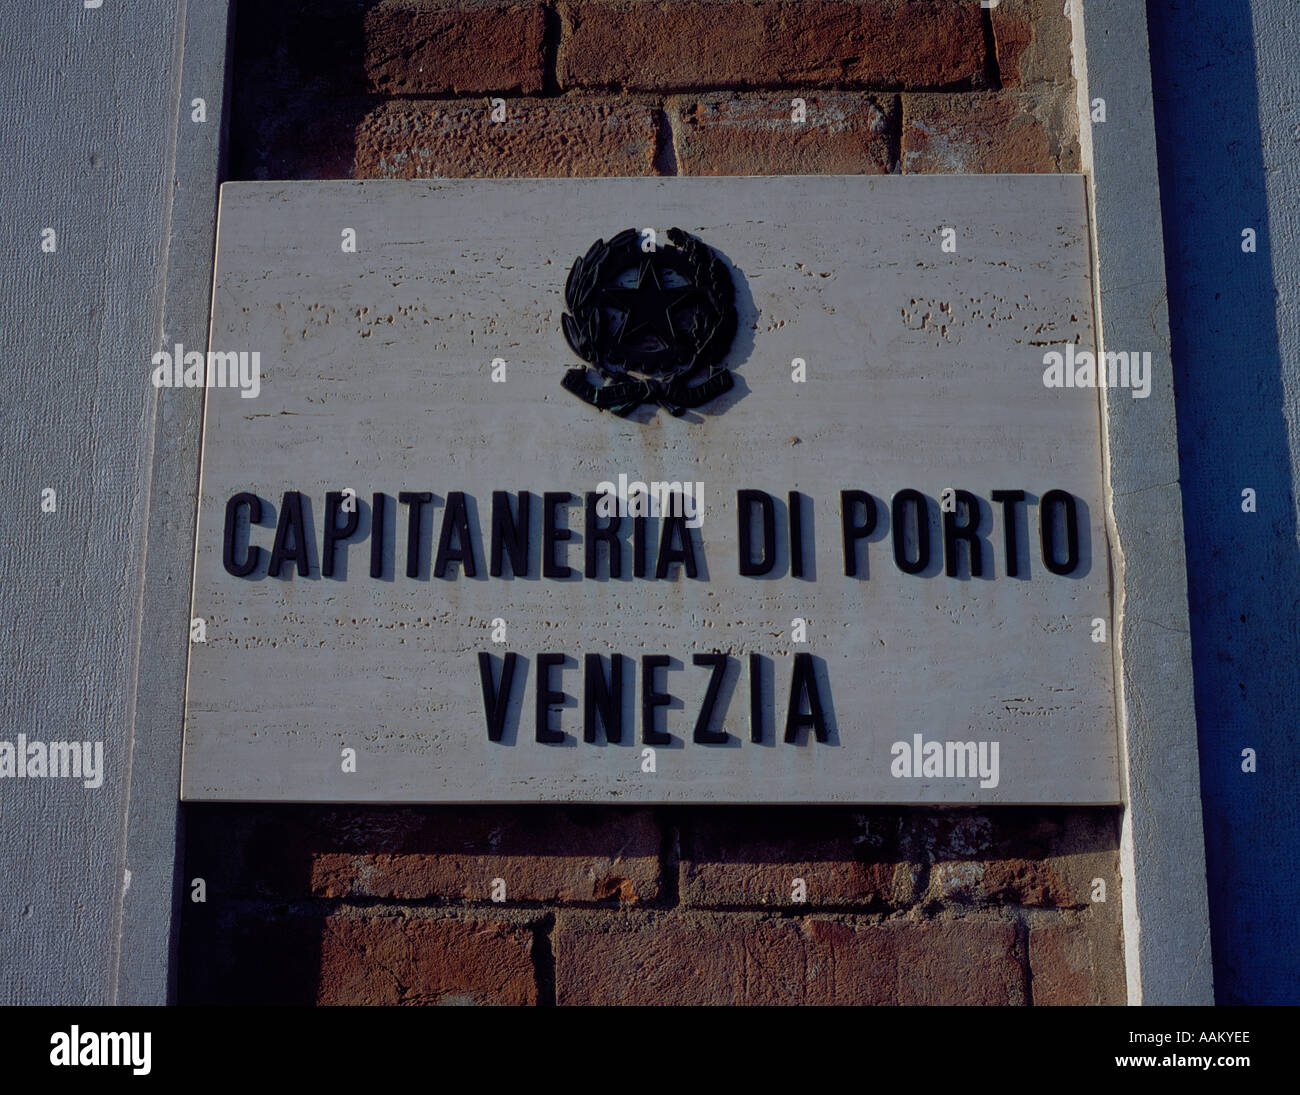 Capitaneria skipper captain office sign building wall port harbour harbor Venice Italy Europe. Photo by Willy Matheisl - Stock Image